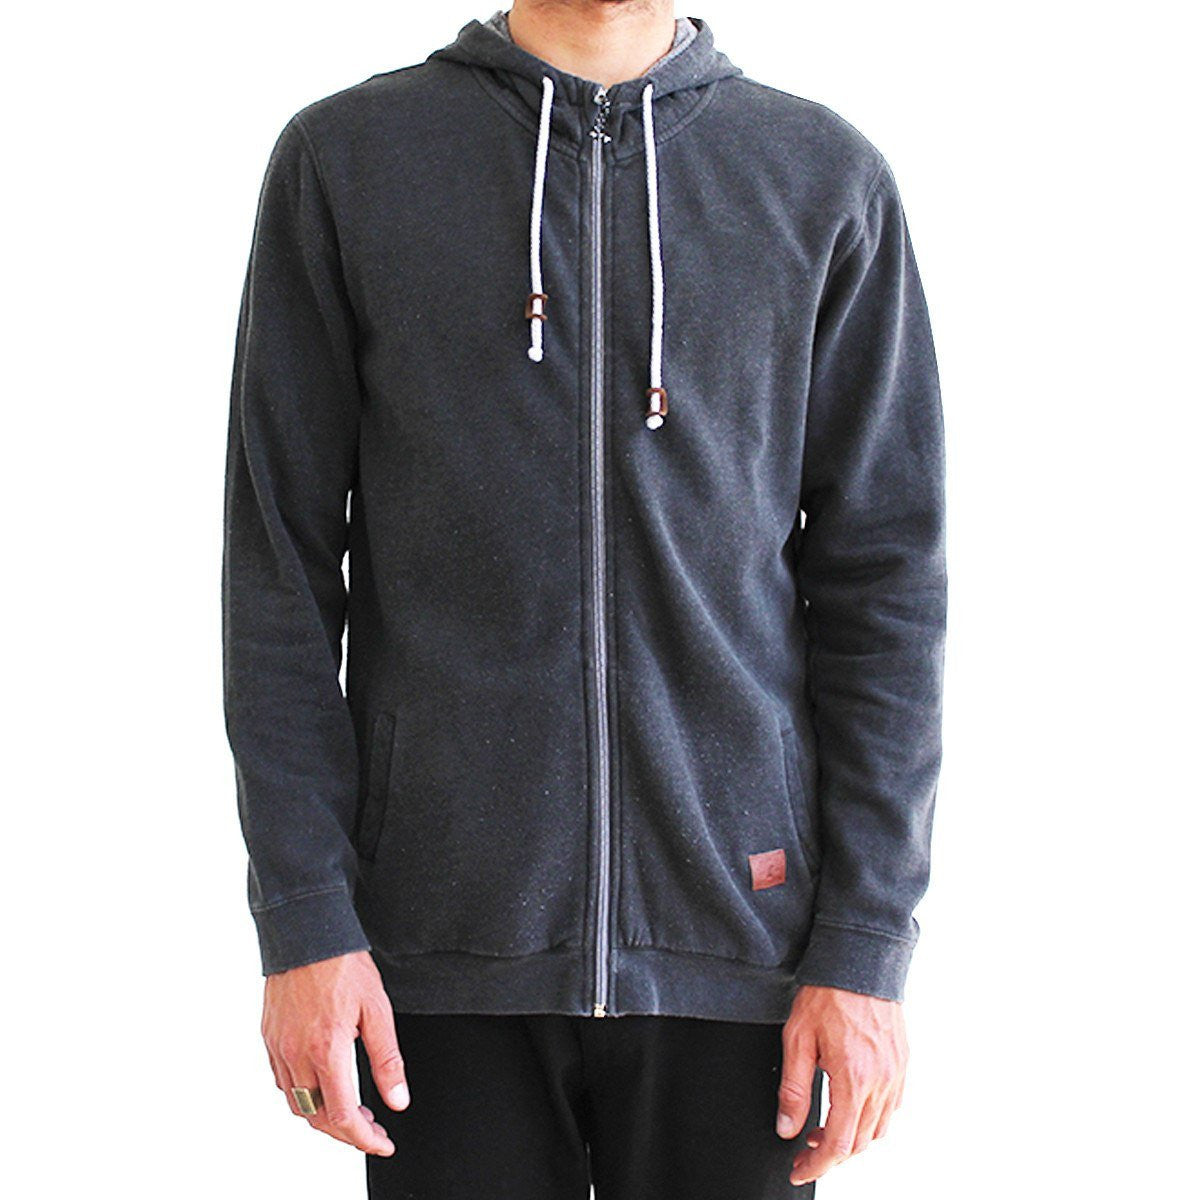 CAPTAIN FIN JEFFERSON ZIP FLEECE - VINTAGE BLACK